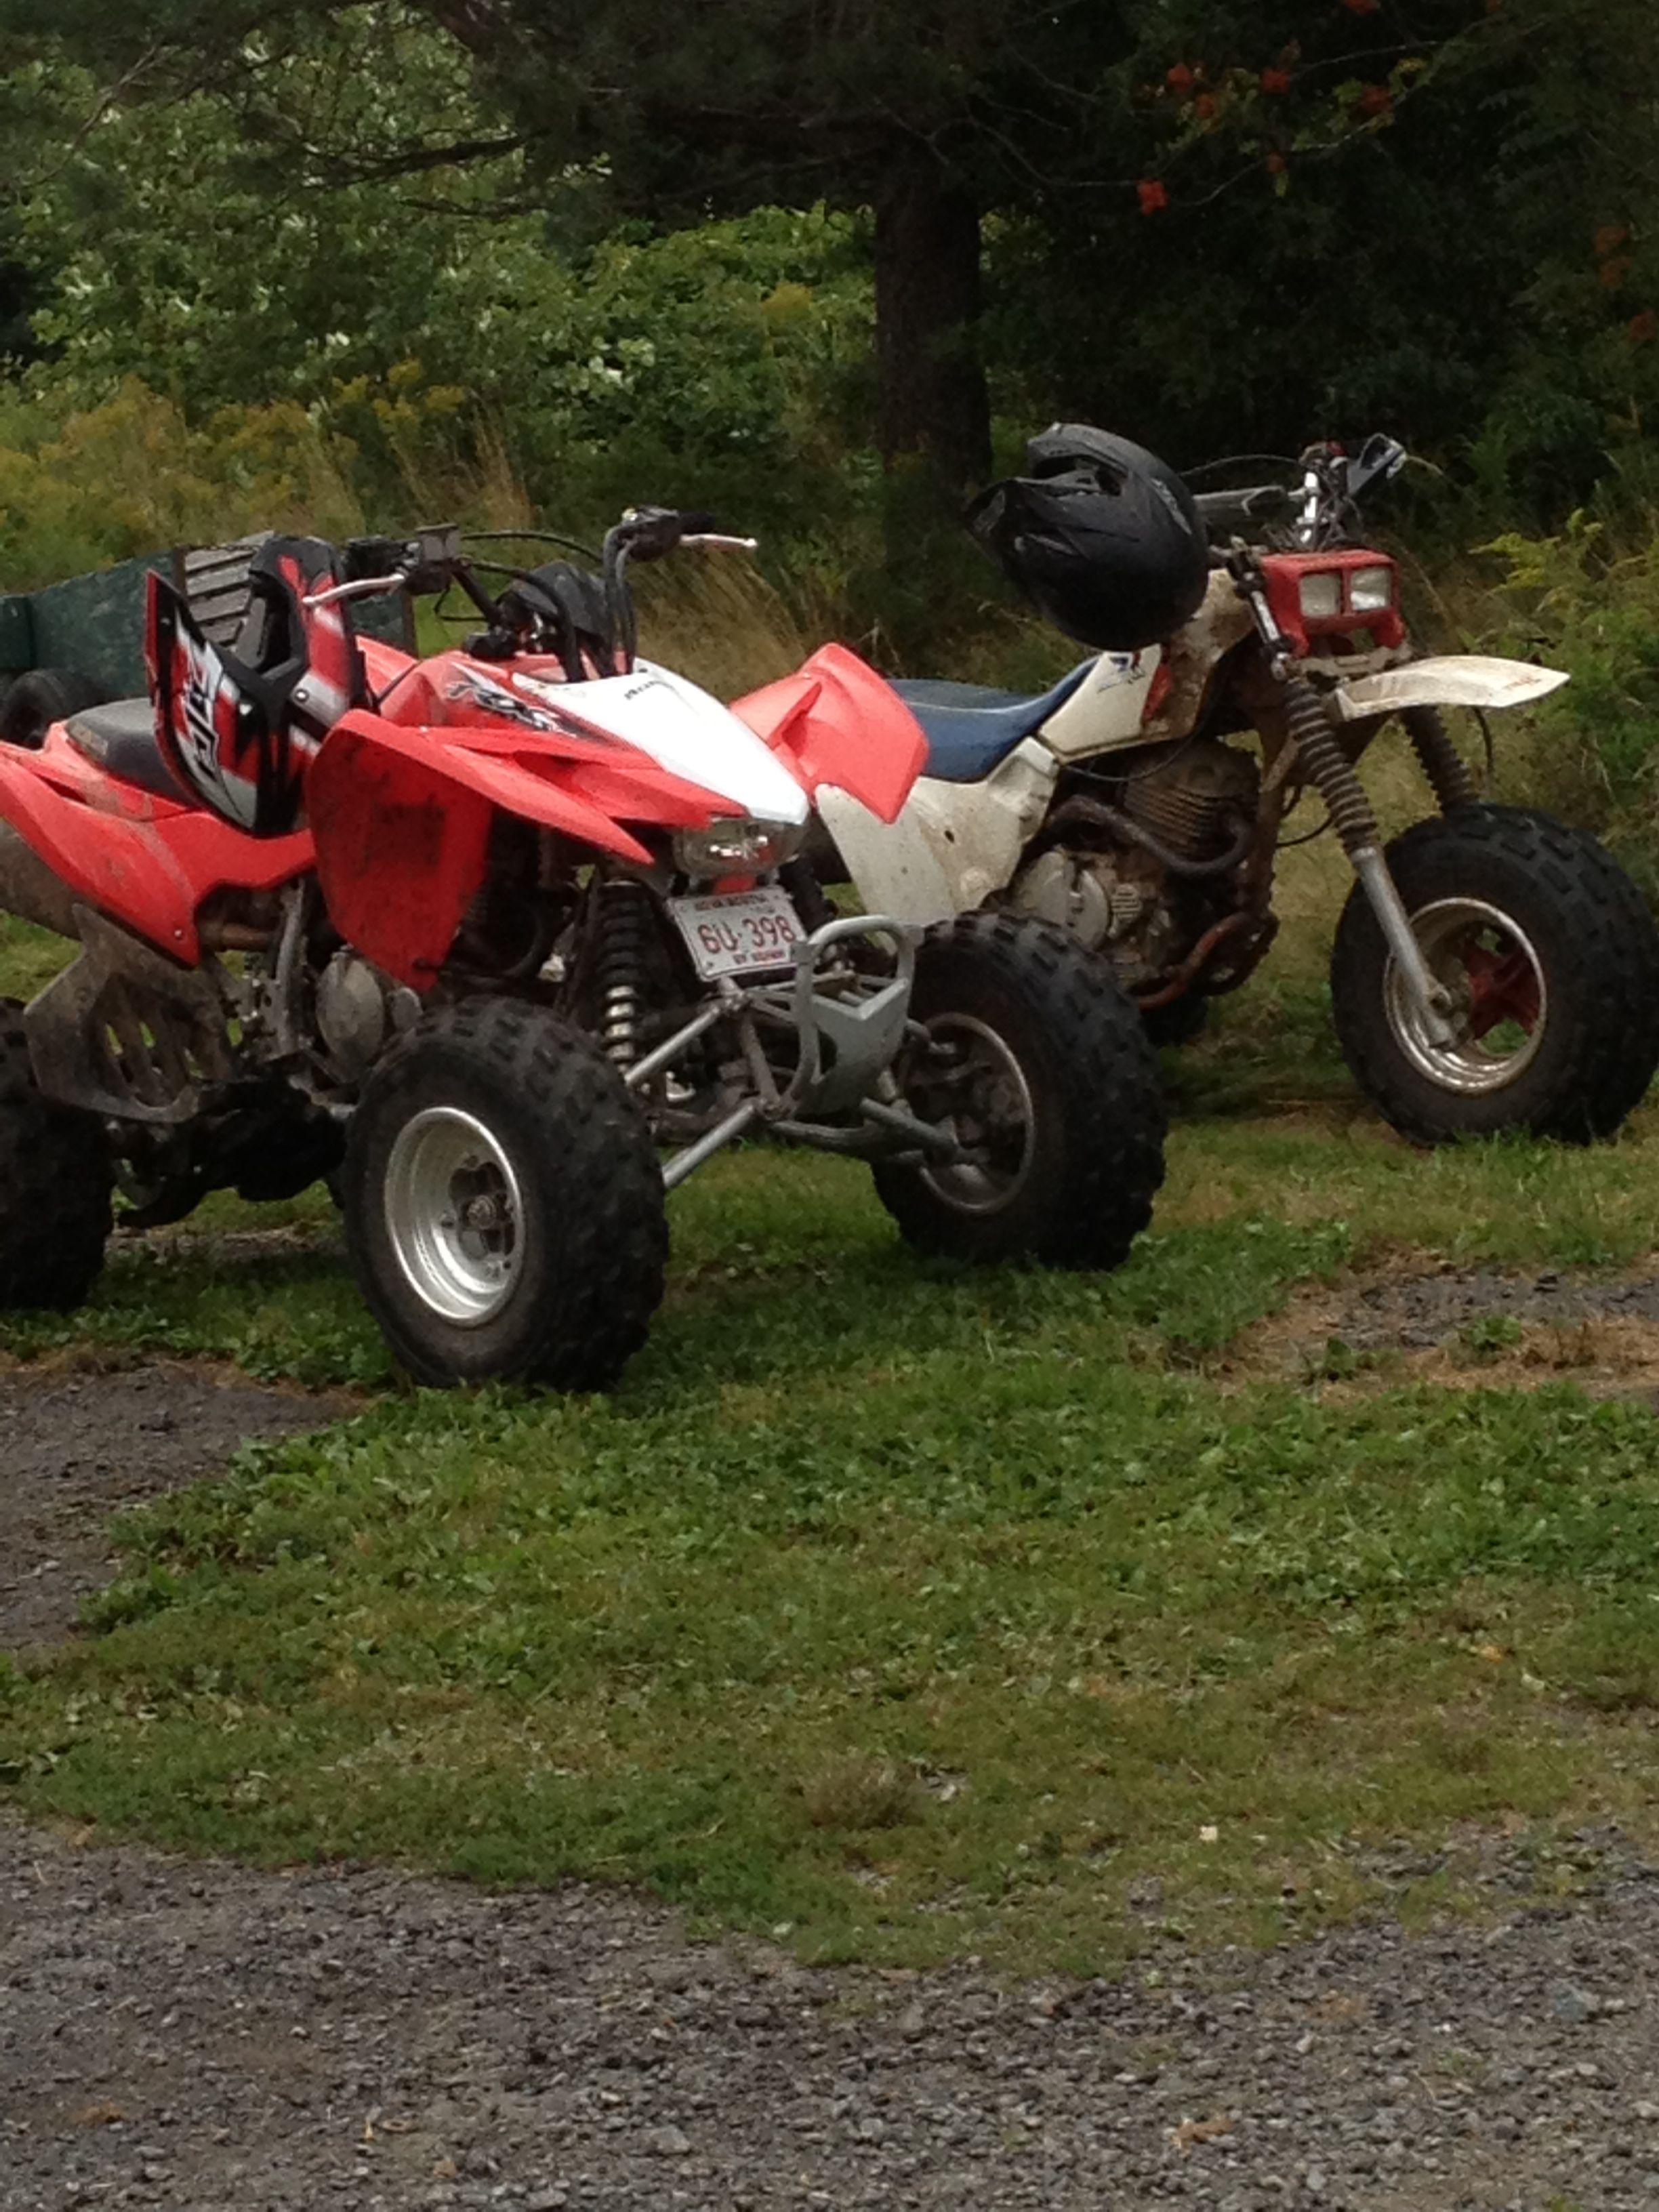 My brothers 300X (350X with a 300EX motor) and his buddies 2013 400X